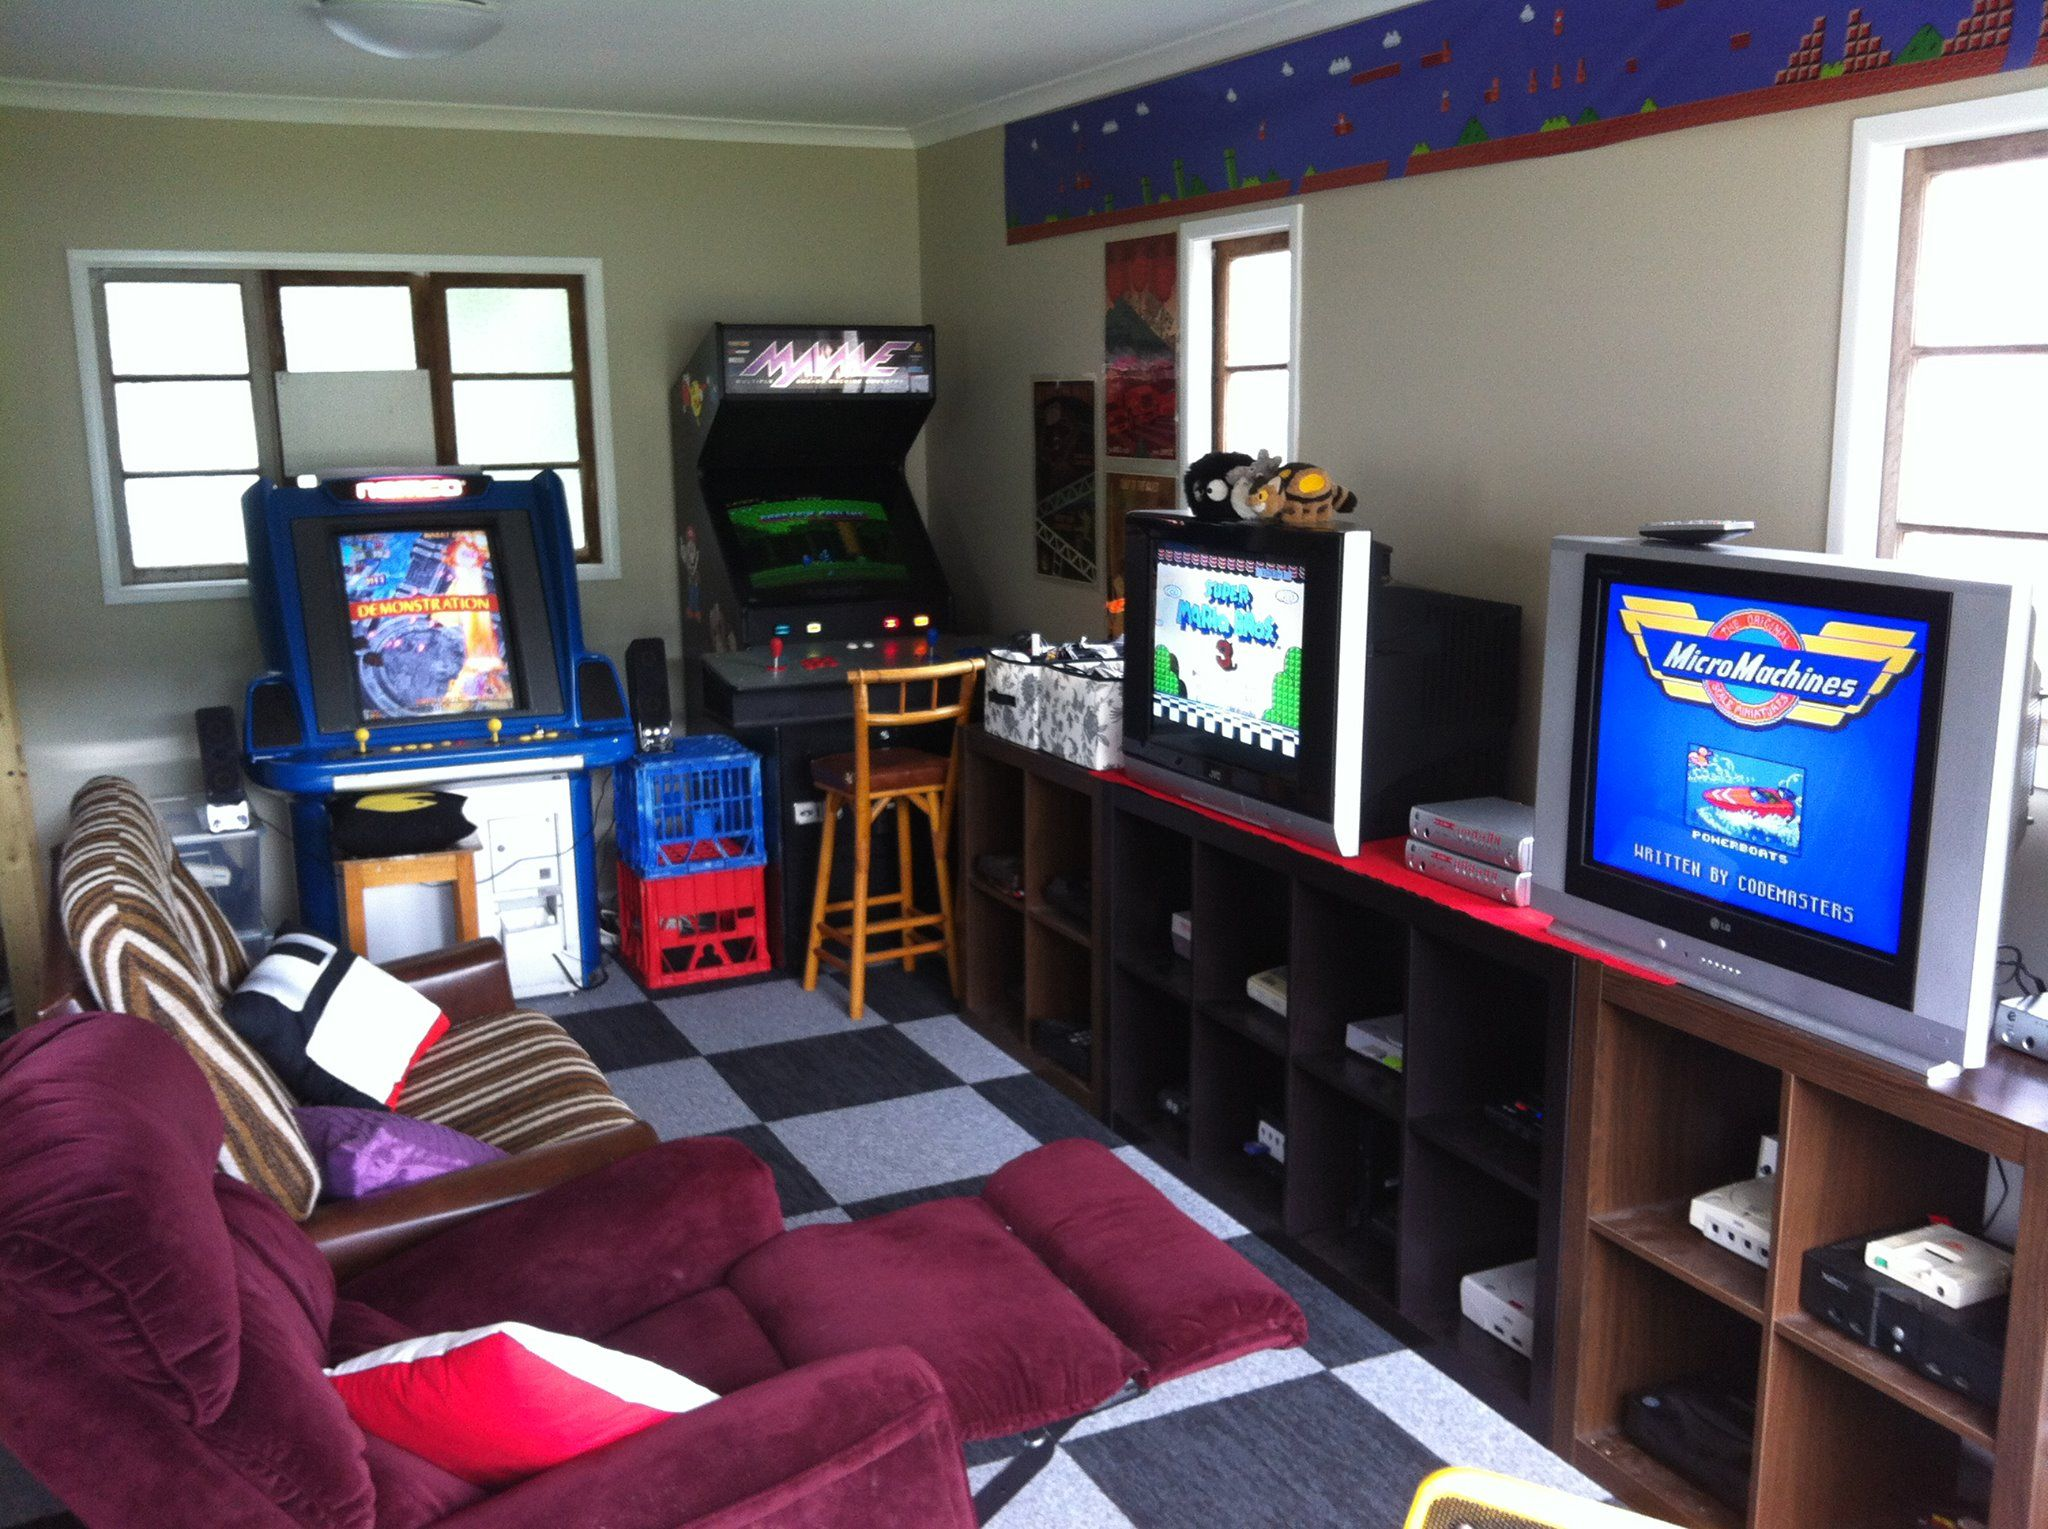 11 Most Popular Video Game Room Ideas [Feel the Awesome Game Play in ... | video game room ideas for small rooms